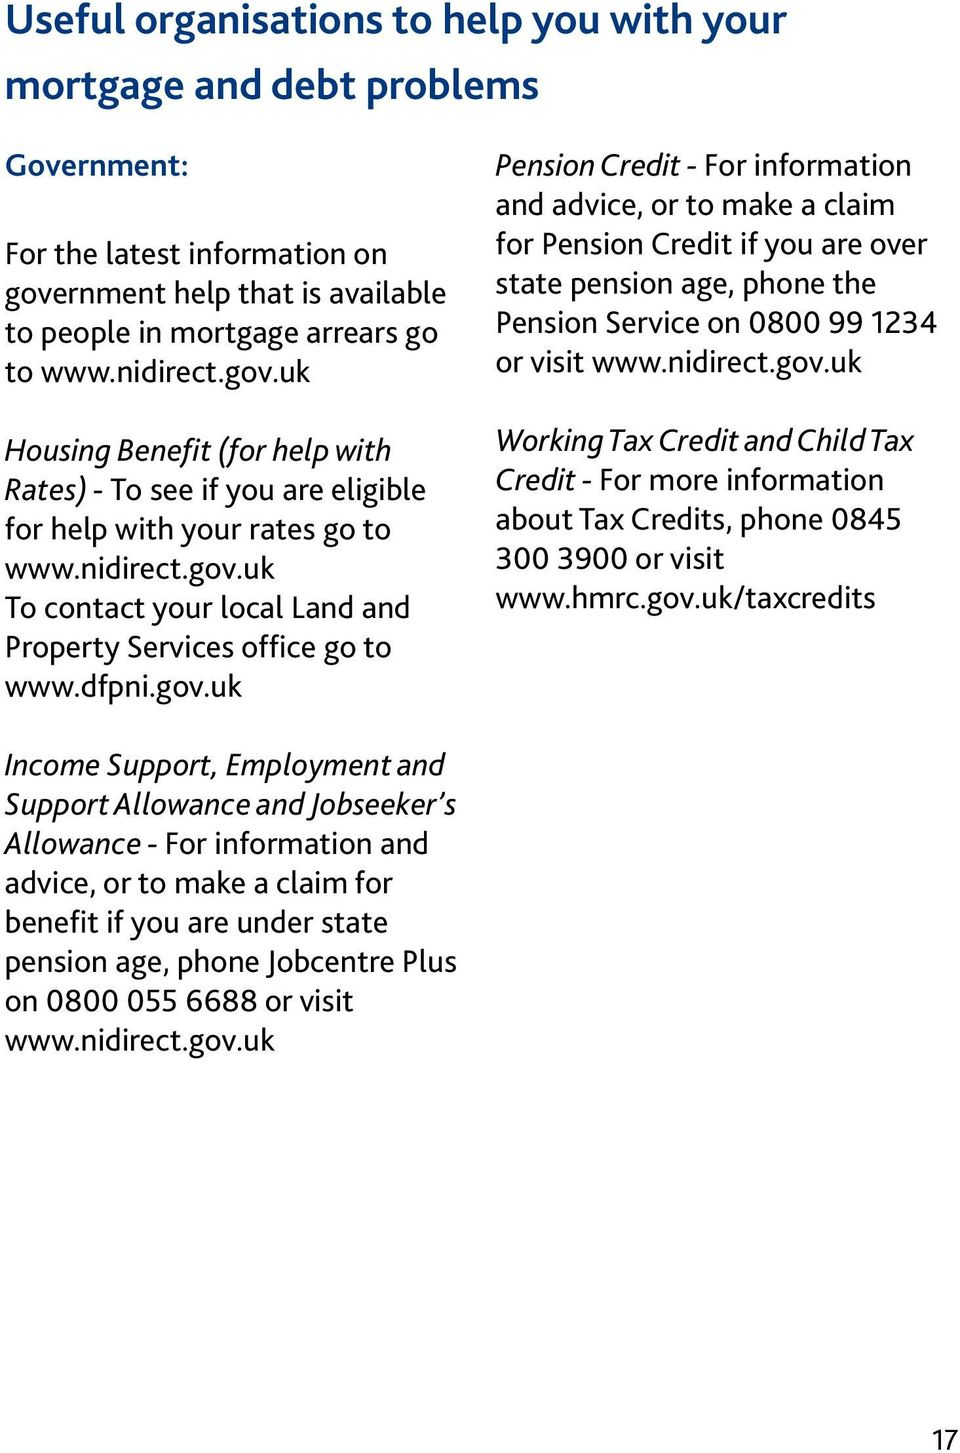 dfpni.gov.uk Pension Credit - For information and advice, or to make a claim for Pension Credit if you are over state pension age, phone the Pension Service on 0800 99 1234 or visit www.nidirect.gov.uk Working Tax Credit and Child Tax Credit - For more information about Tax Credits, phone 0845 300 3900 or visit www.